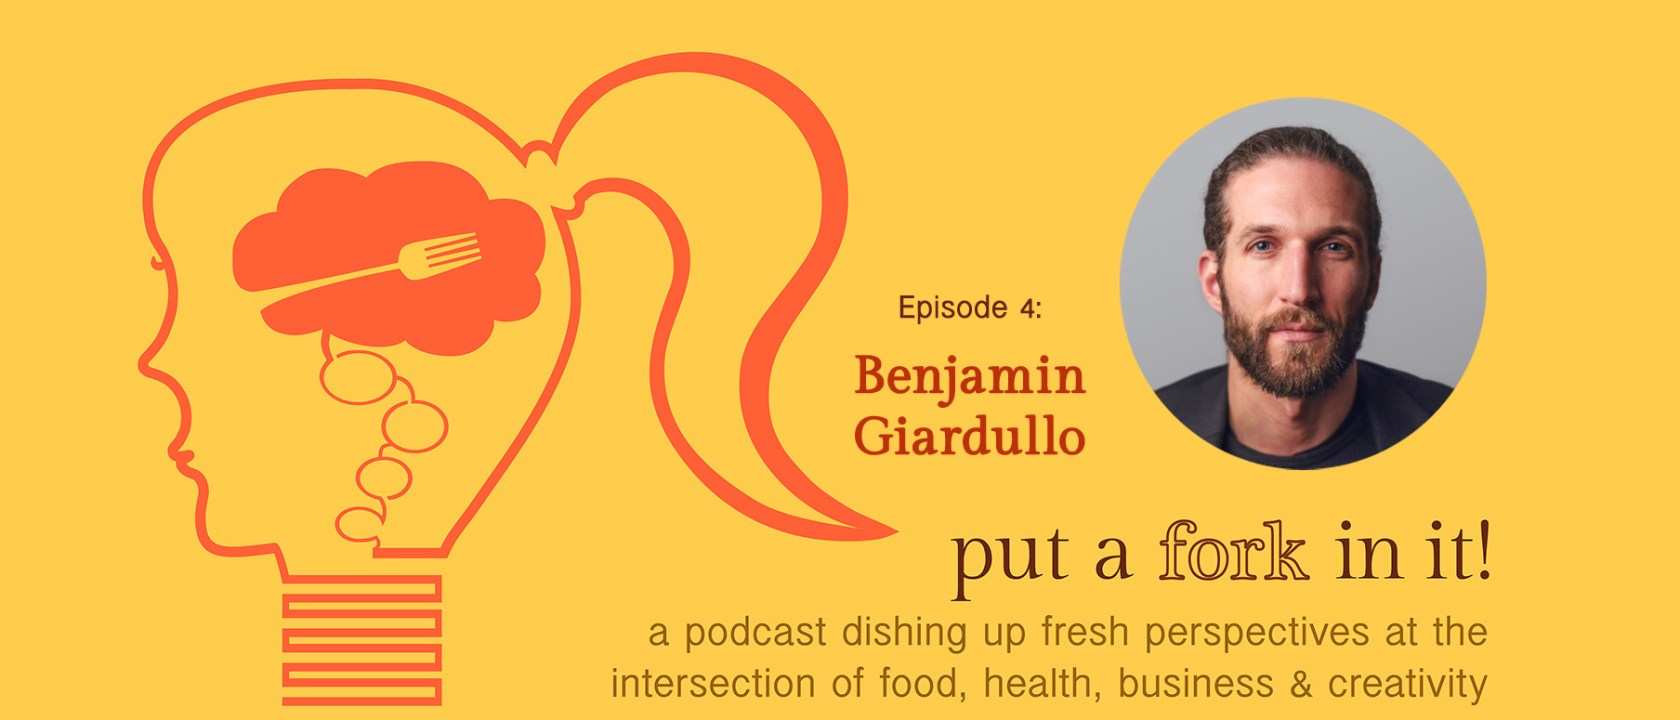 PAFII Episode 4 - Ben Giardullo